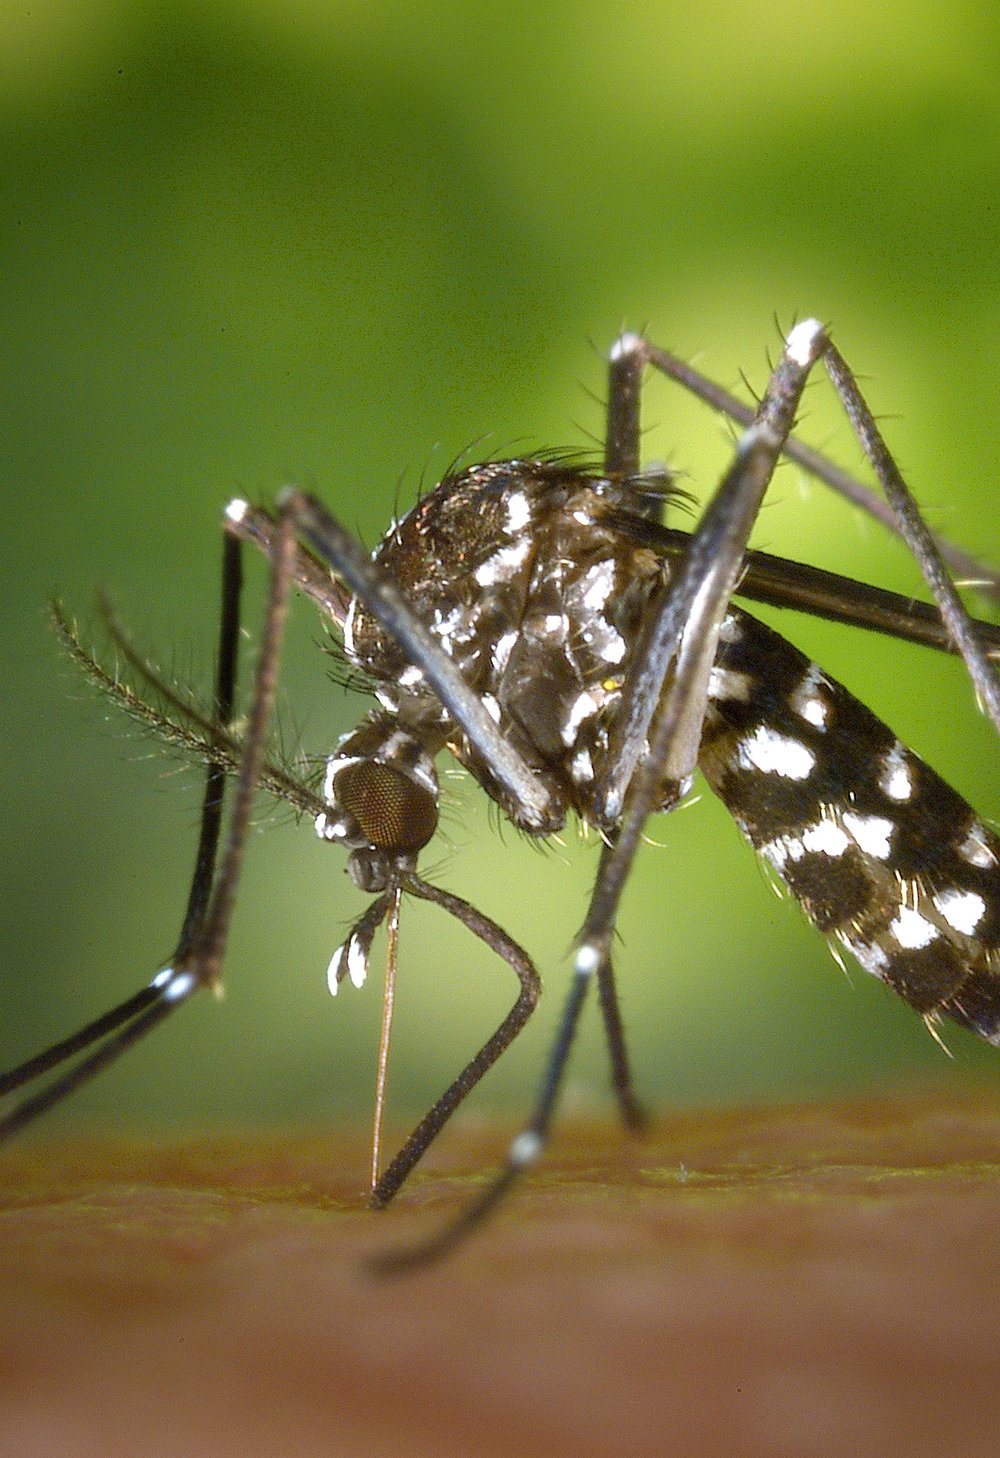 Mosquito fogging, mosquito spraying, how to get rid of mosquitos,Bug Assassin Pest Management, mosquito suppression, Vero Beach Pest Control, Sebastian Pest Control, Exterminators, Vero Beach Exterminator, Sebastian Exterminator, Best pest control companies in Indian River County